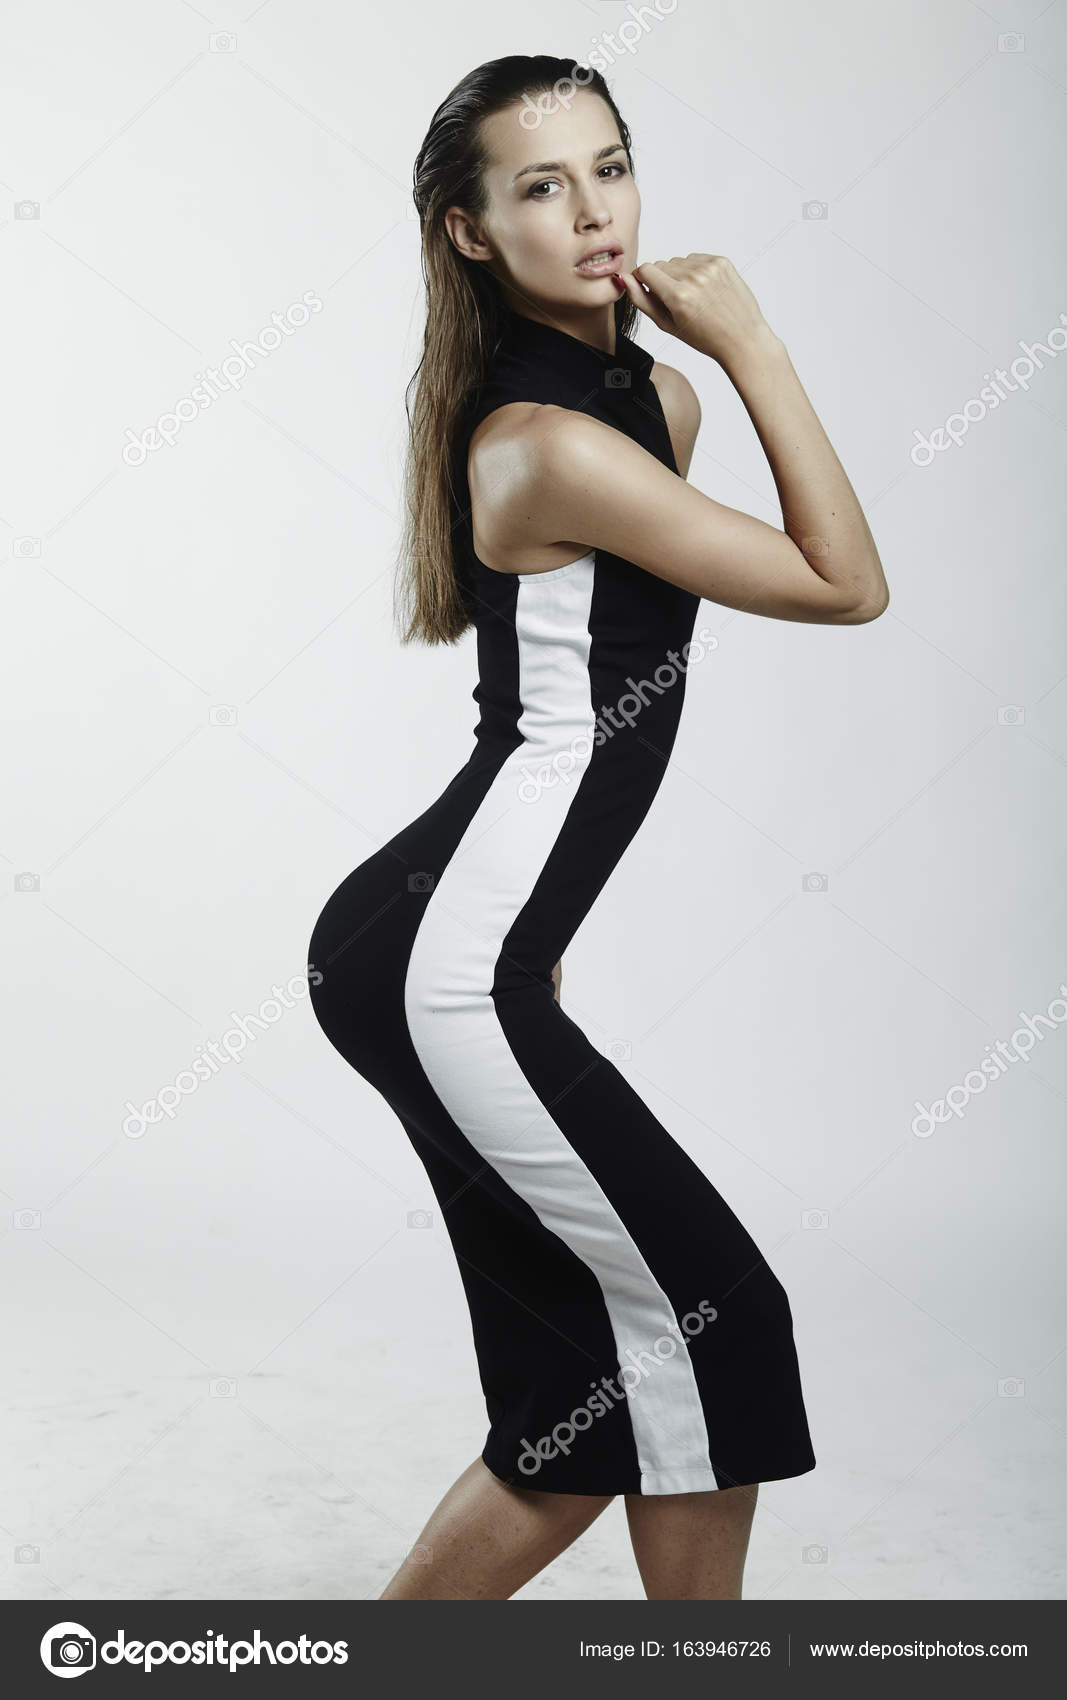 women in black and white dress with perfect ass shape. — stock photo